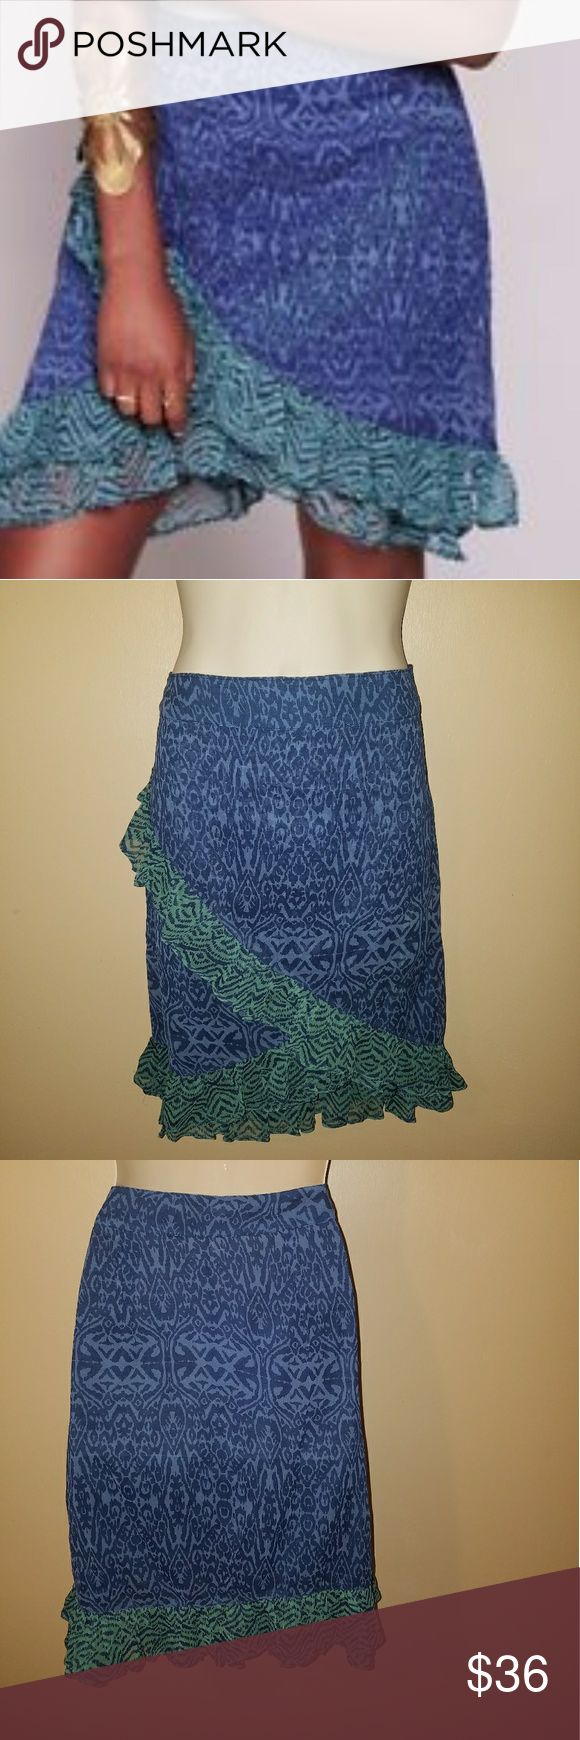 Free People Skirt Free People blue green skirt size 10 see photos of measurements Free People Skirts